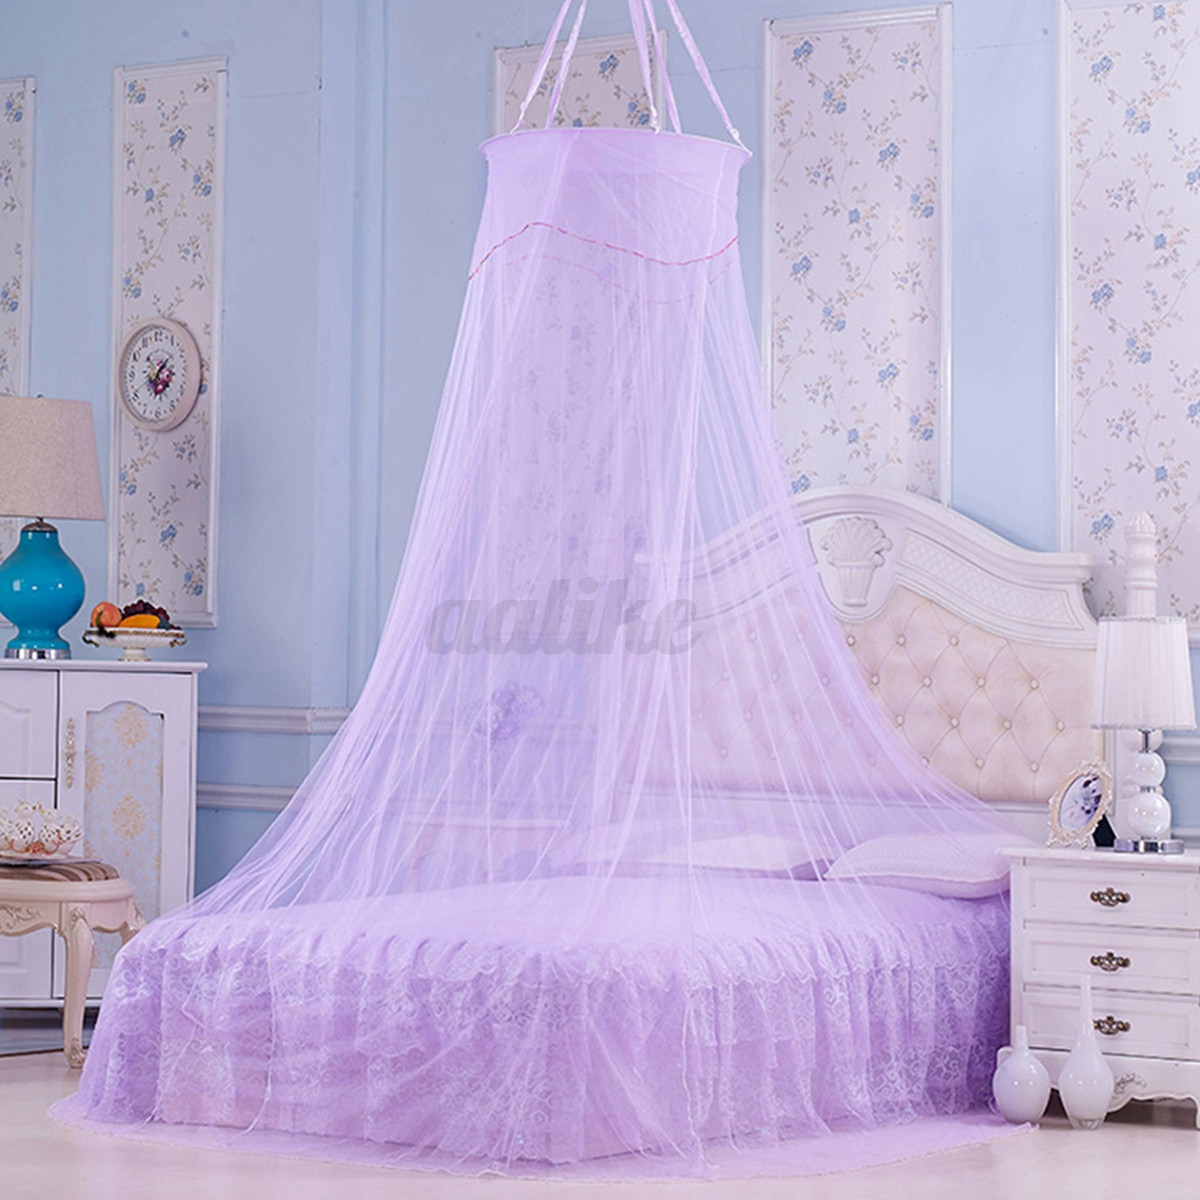 Elegant Round Lace Bed Canopy Netting Curtain Fly Midge